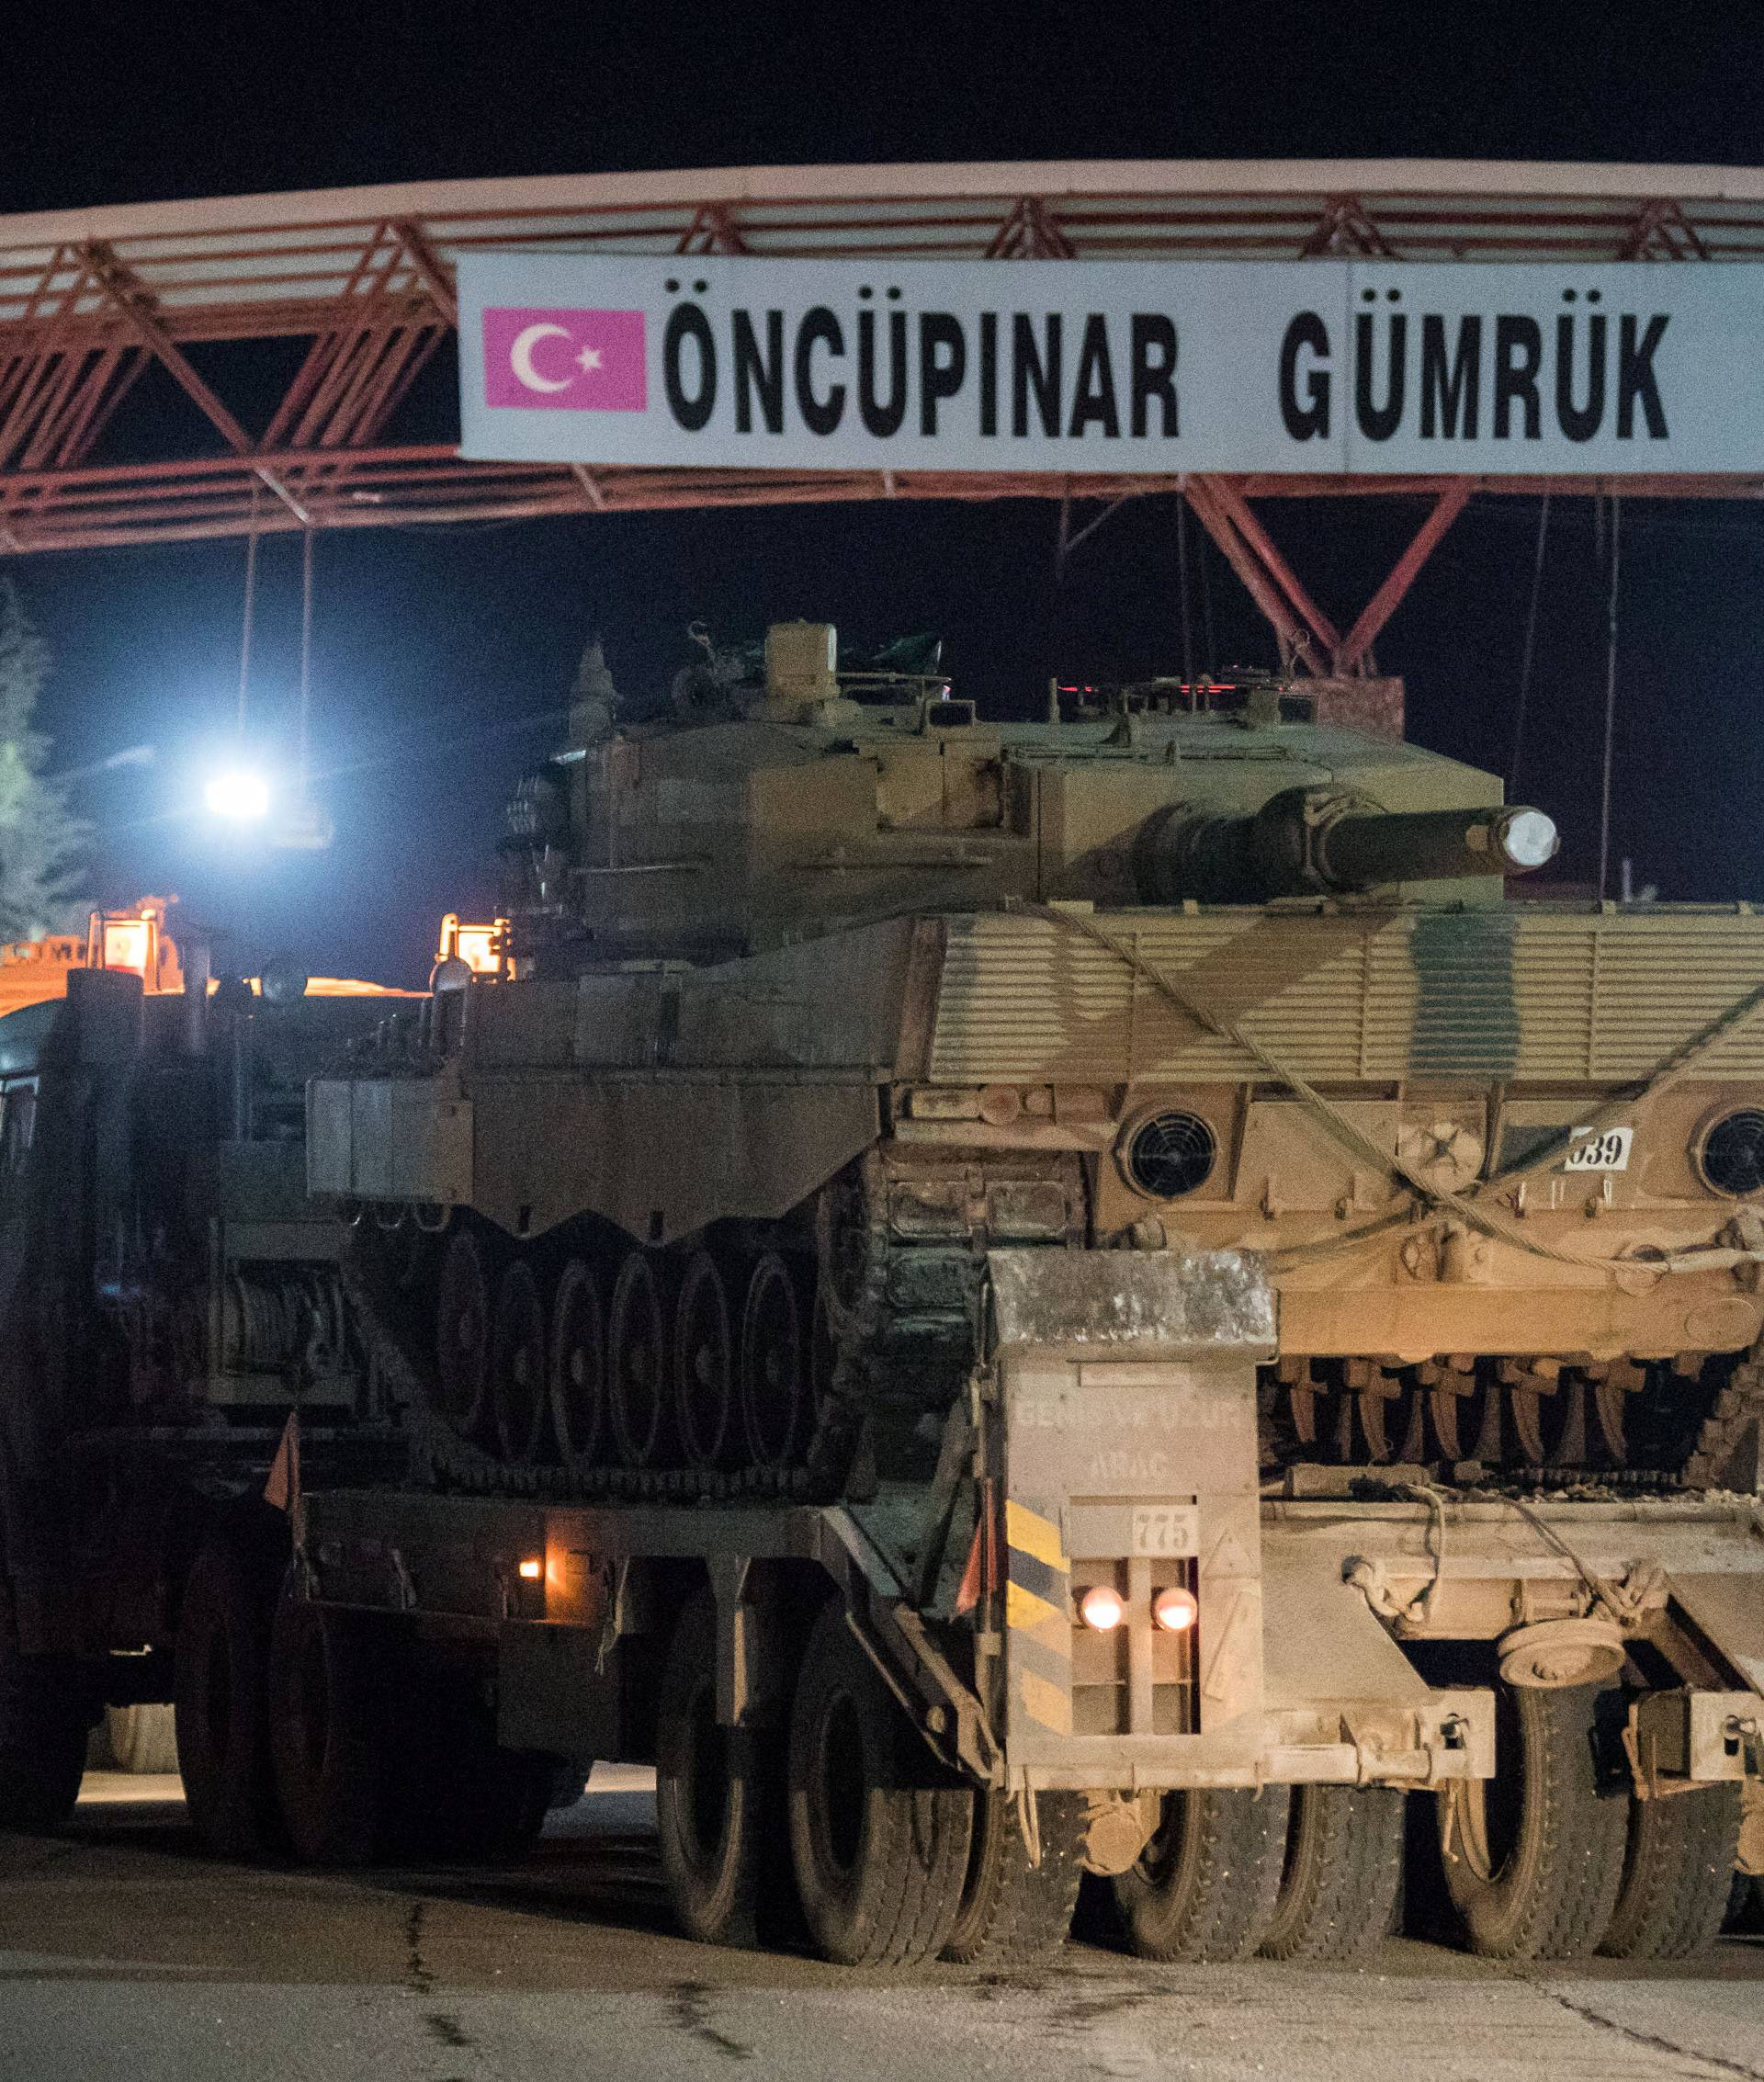 Turkish military vehicles cross into Syria at Oncupinar border gate in Kilis